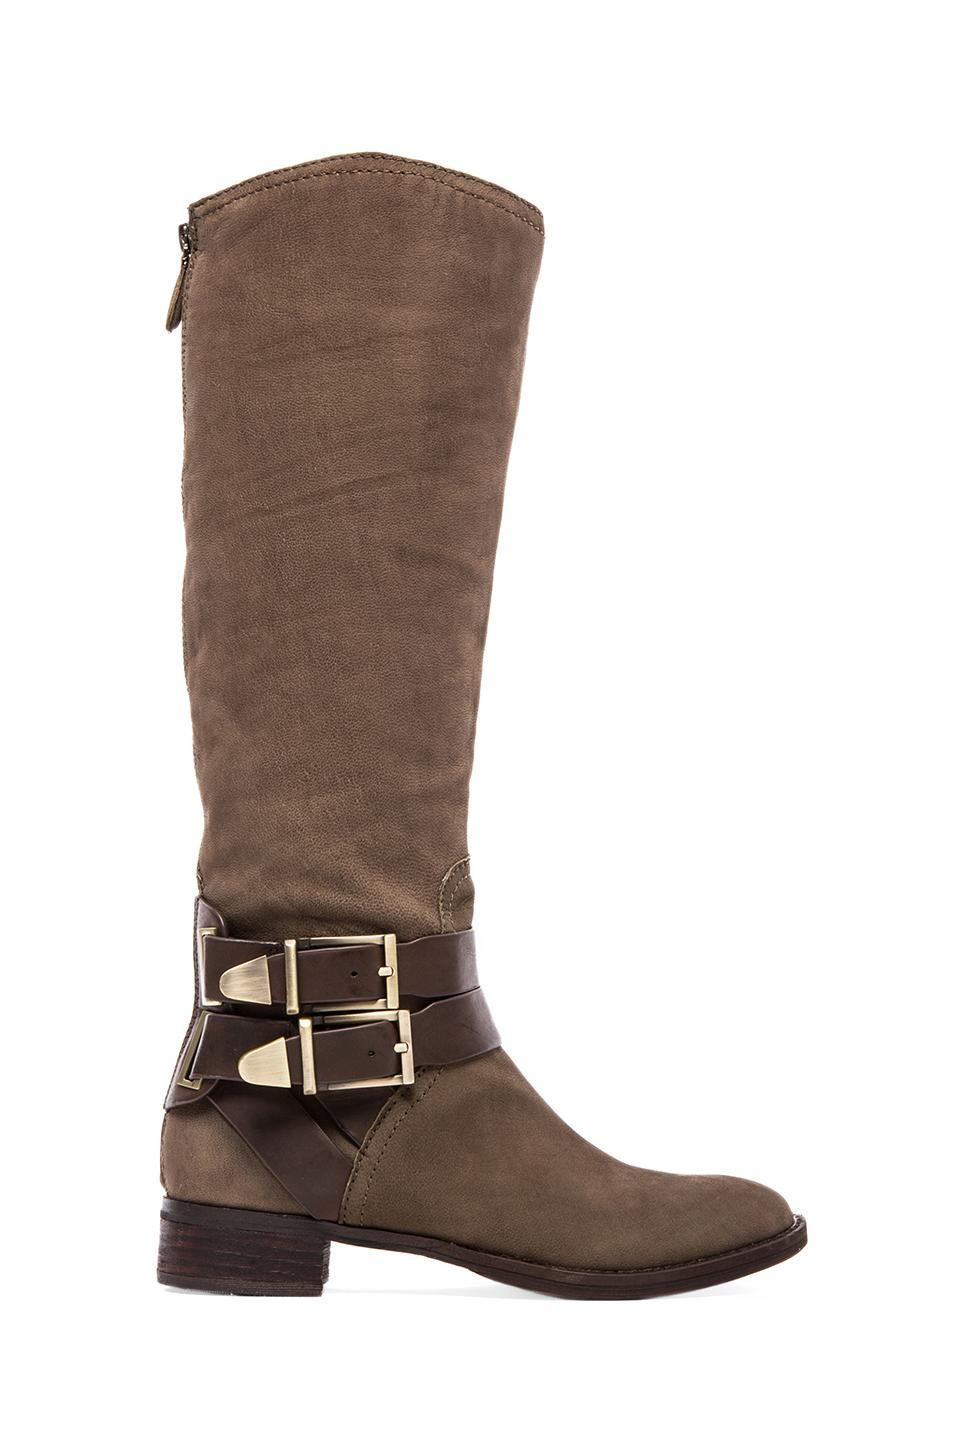 Boutique 9 Randen Boot in Taupe